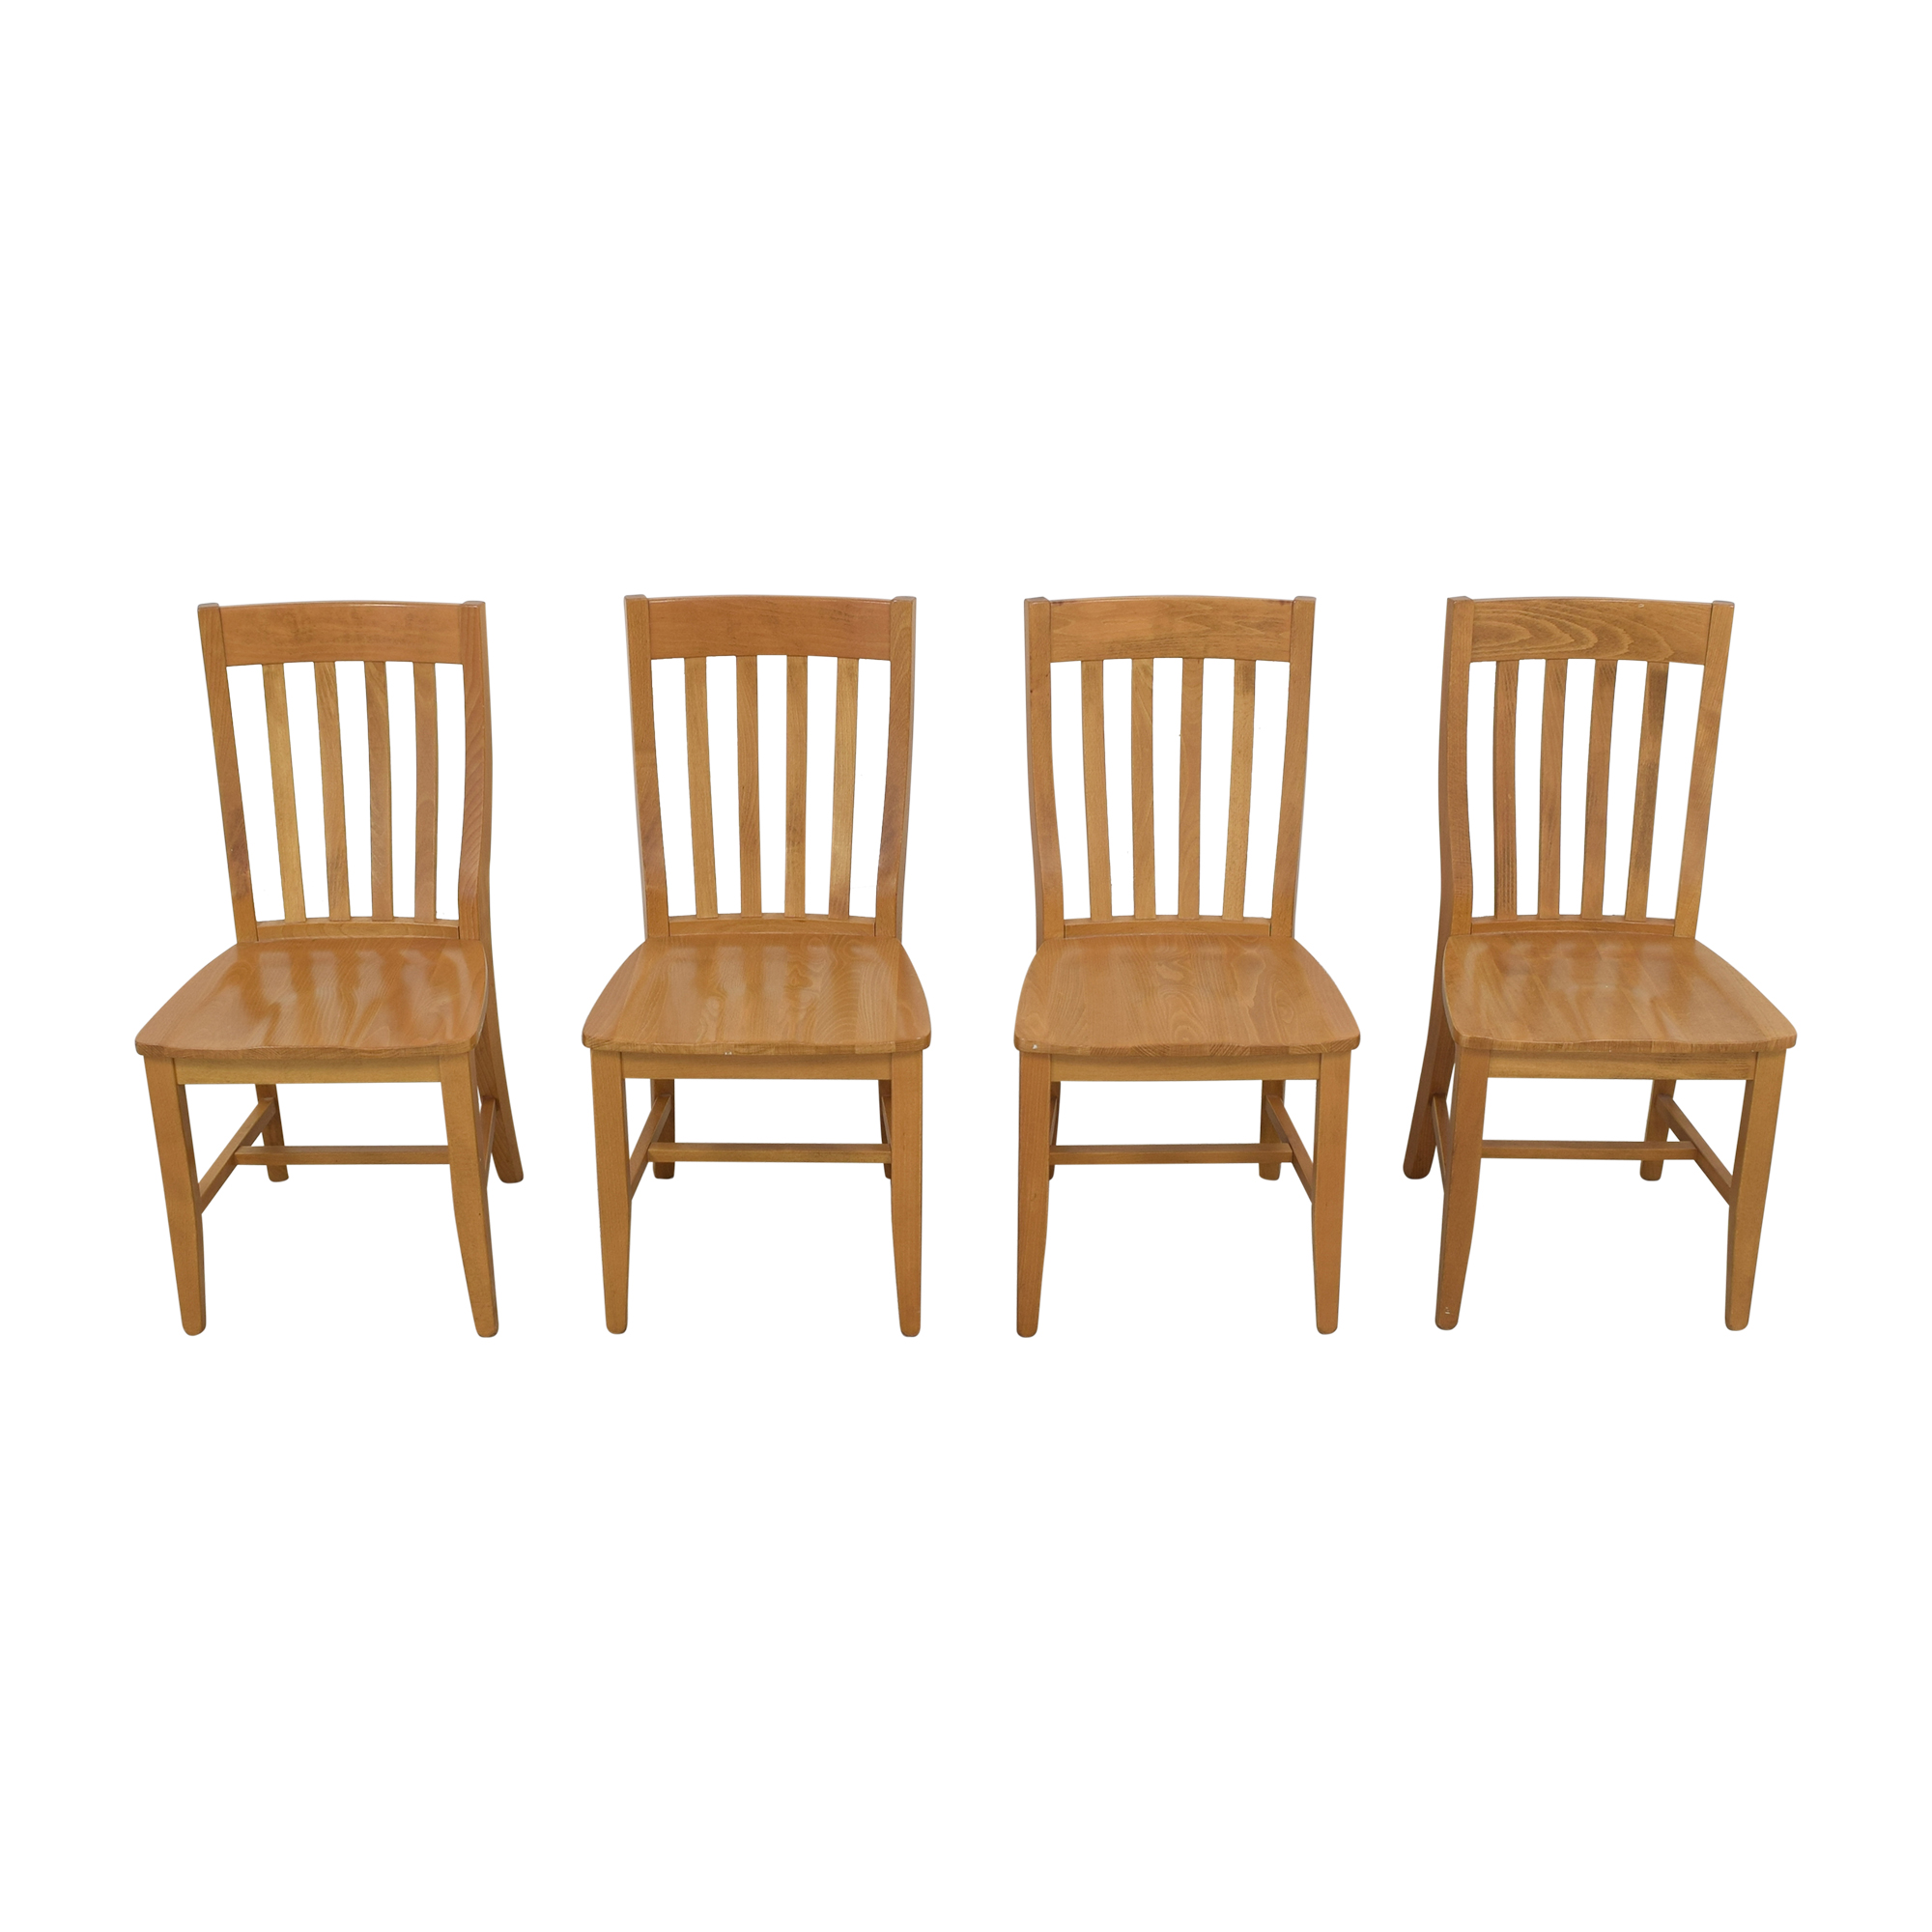 buy Pottery Barn Pottery Barn Schoolhouse Chairs online